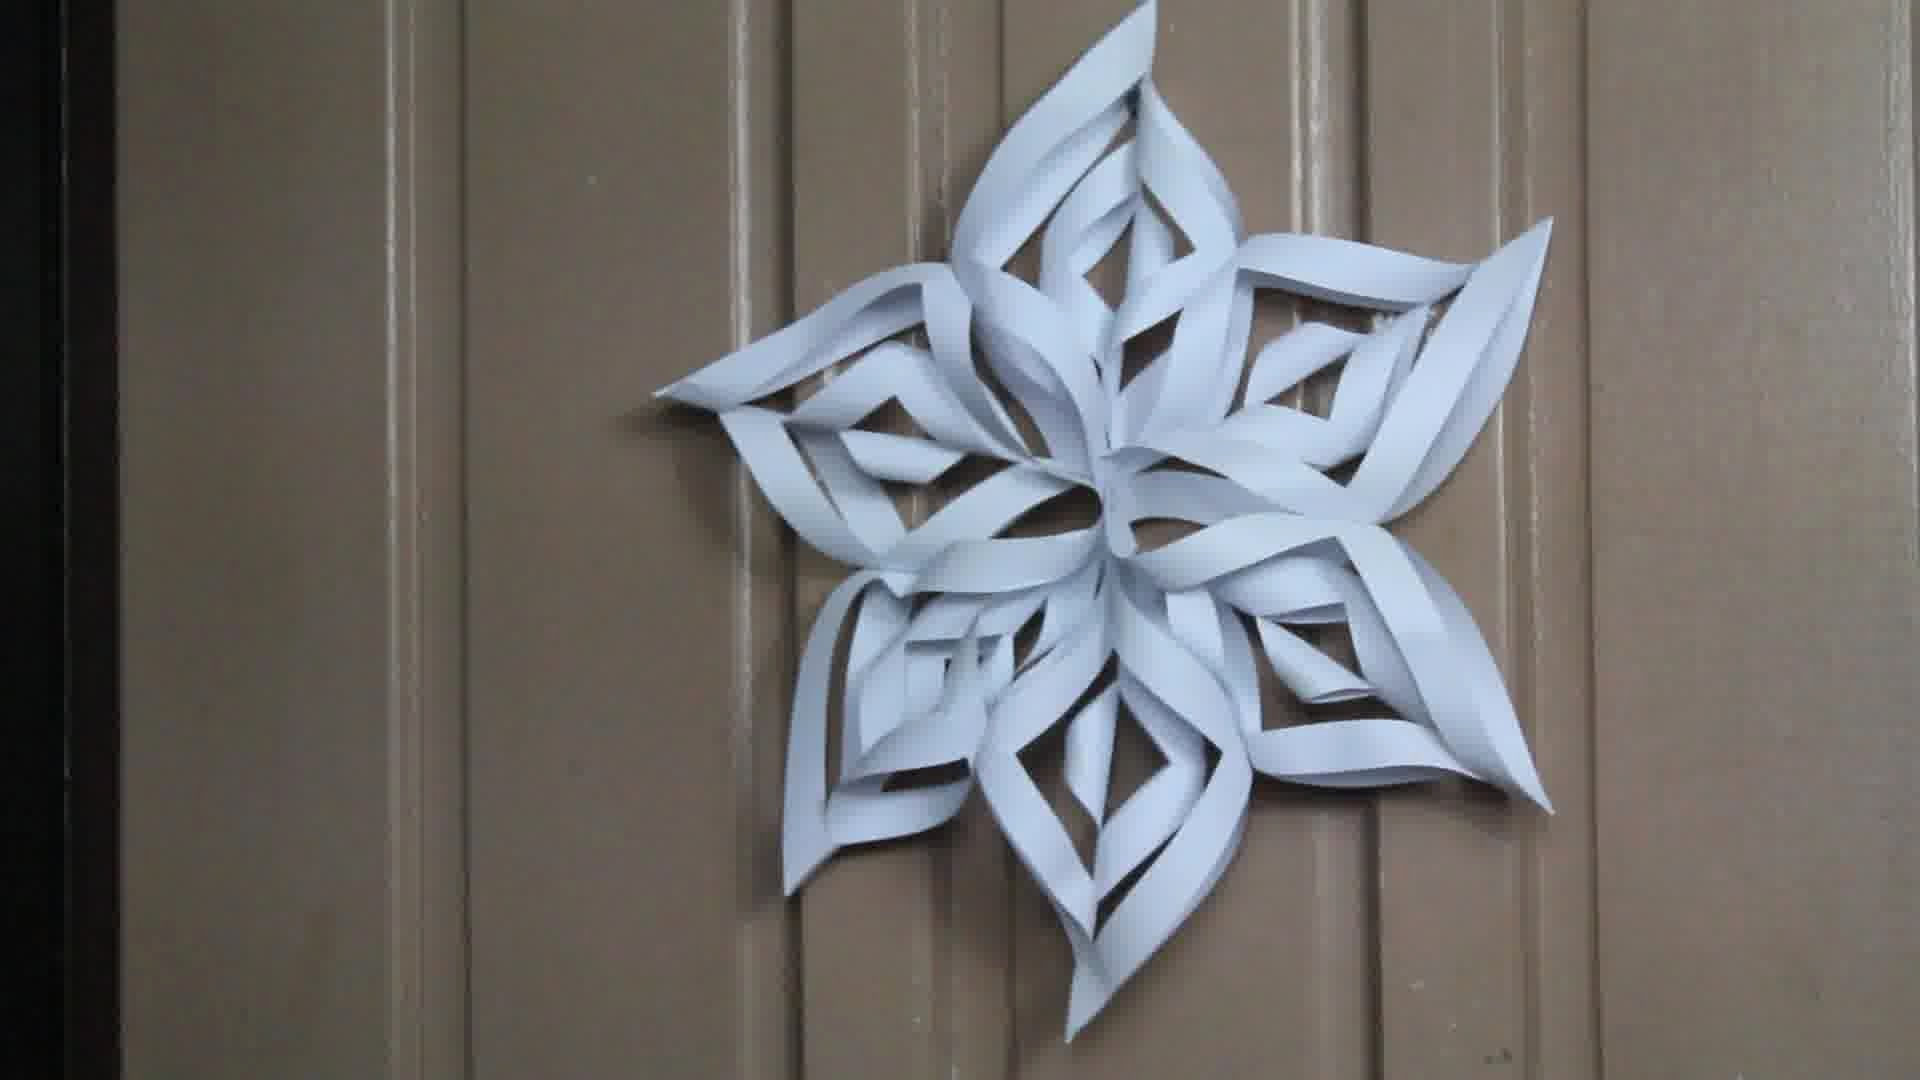 How to Make 3d Snowflakes Inspirational How to Make A 3d Paper Snowflake 13 Steps with